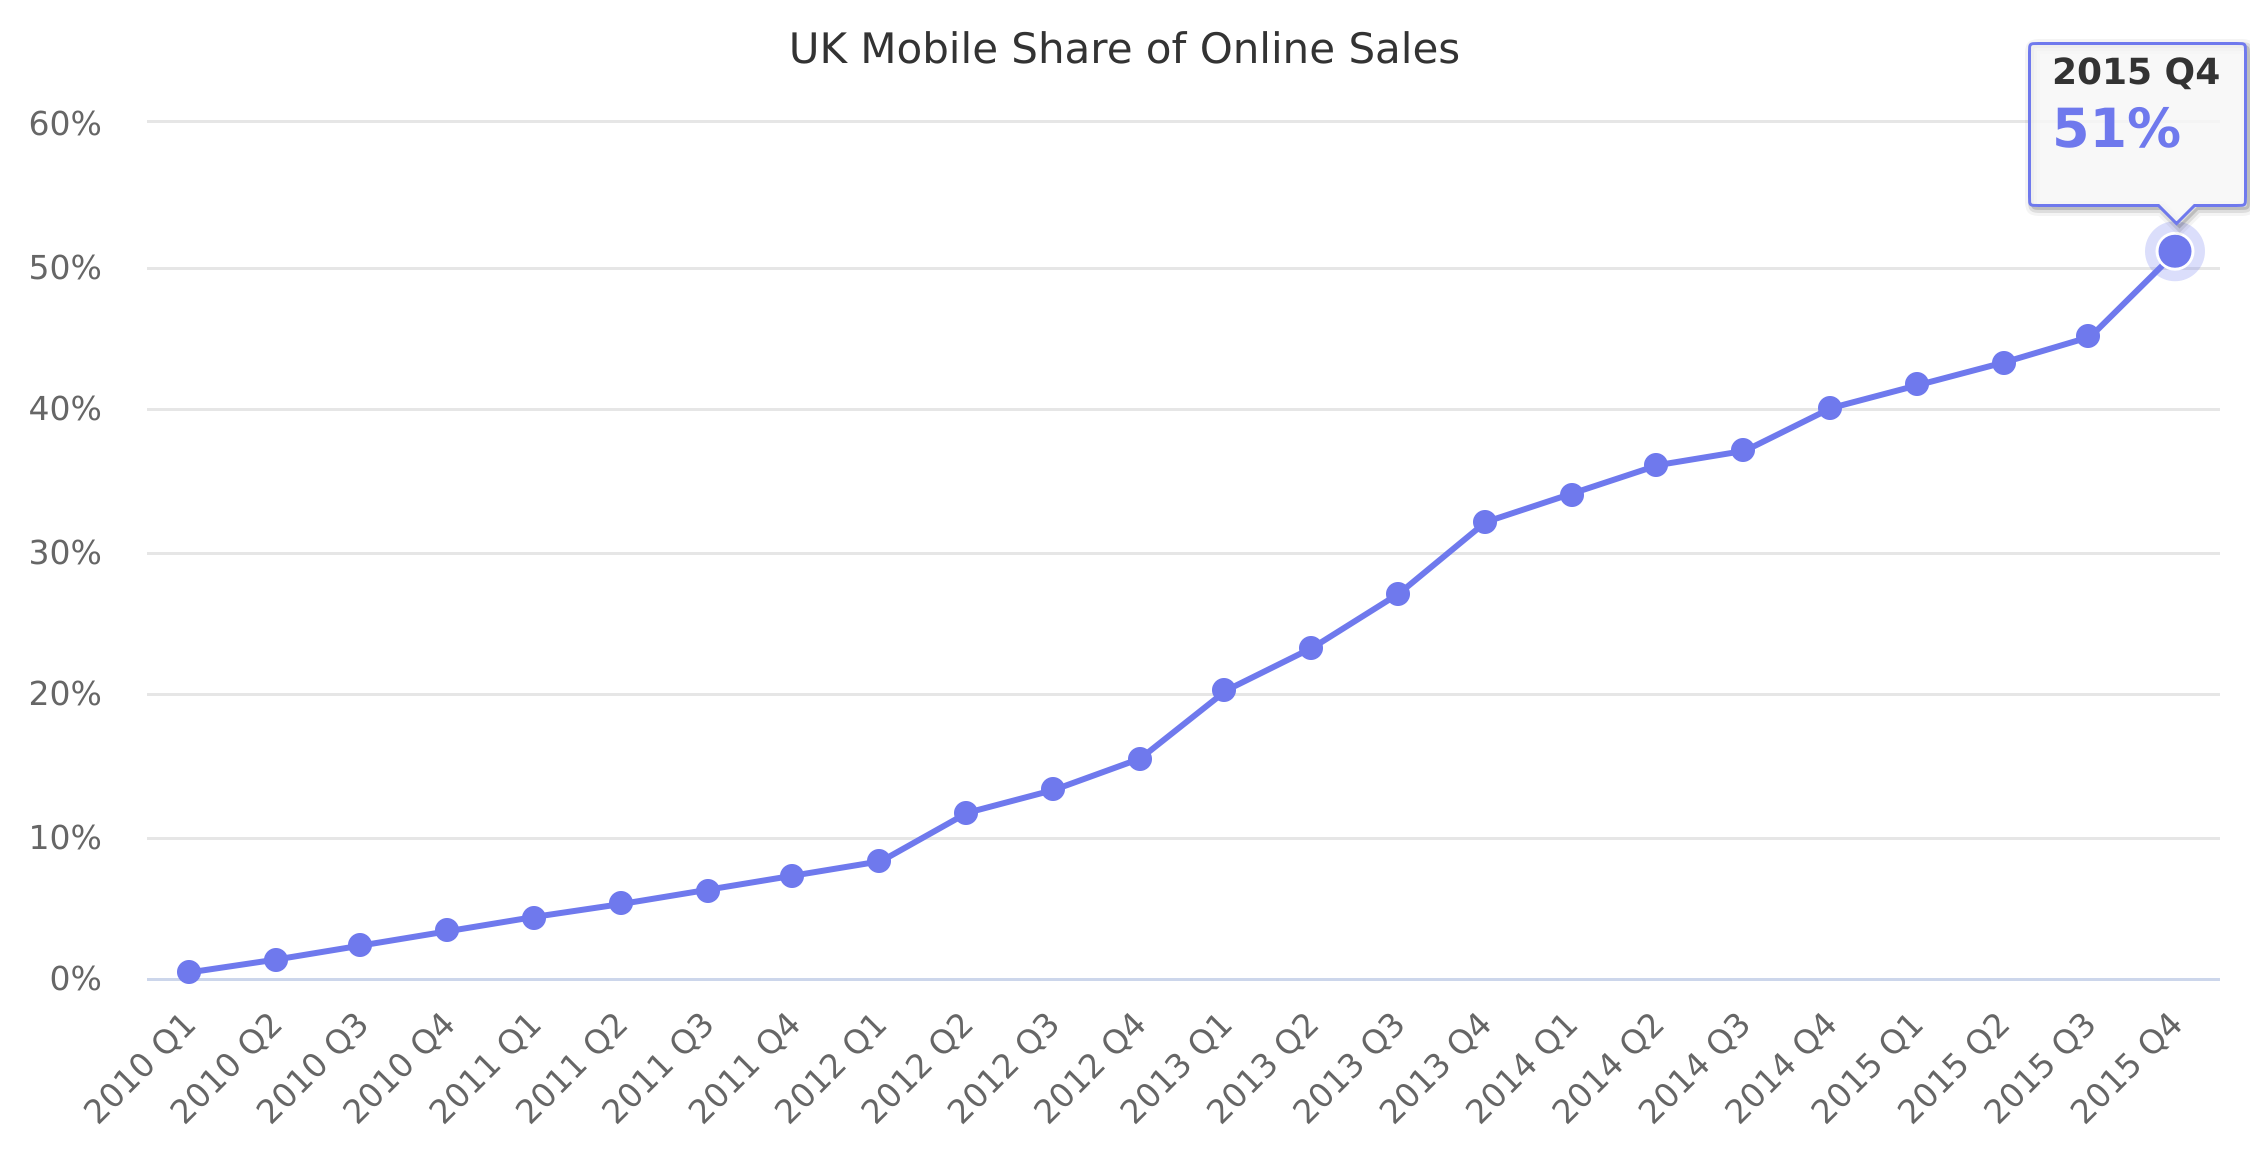 UK Mobile Share of Online Sales 2010-2015